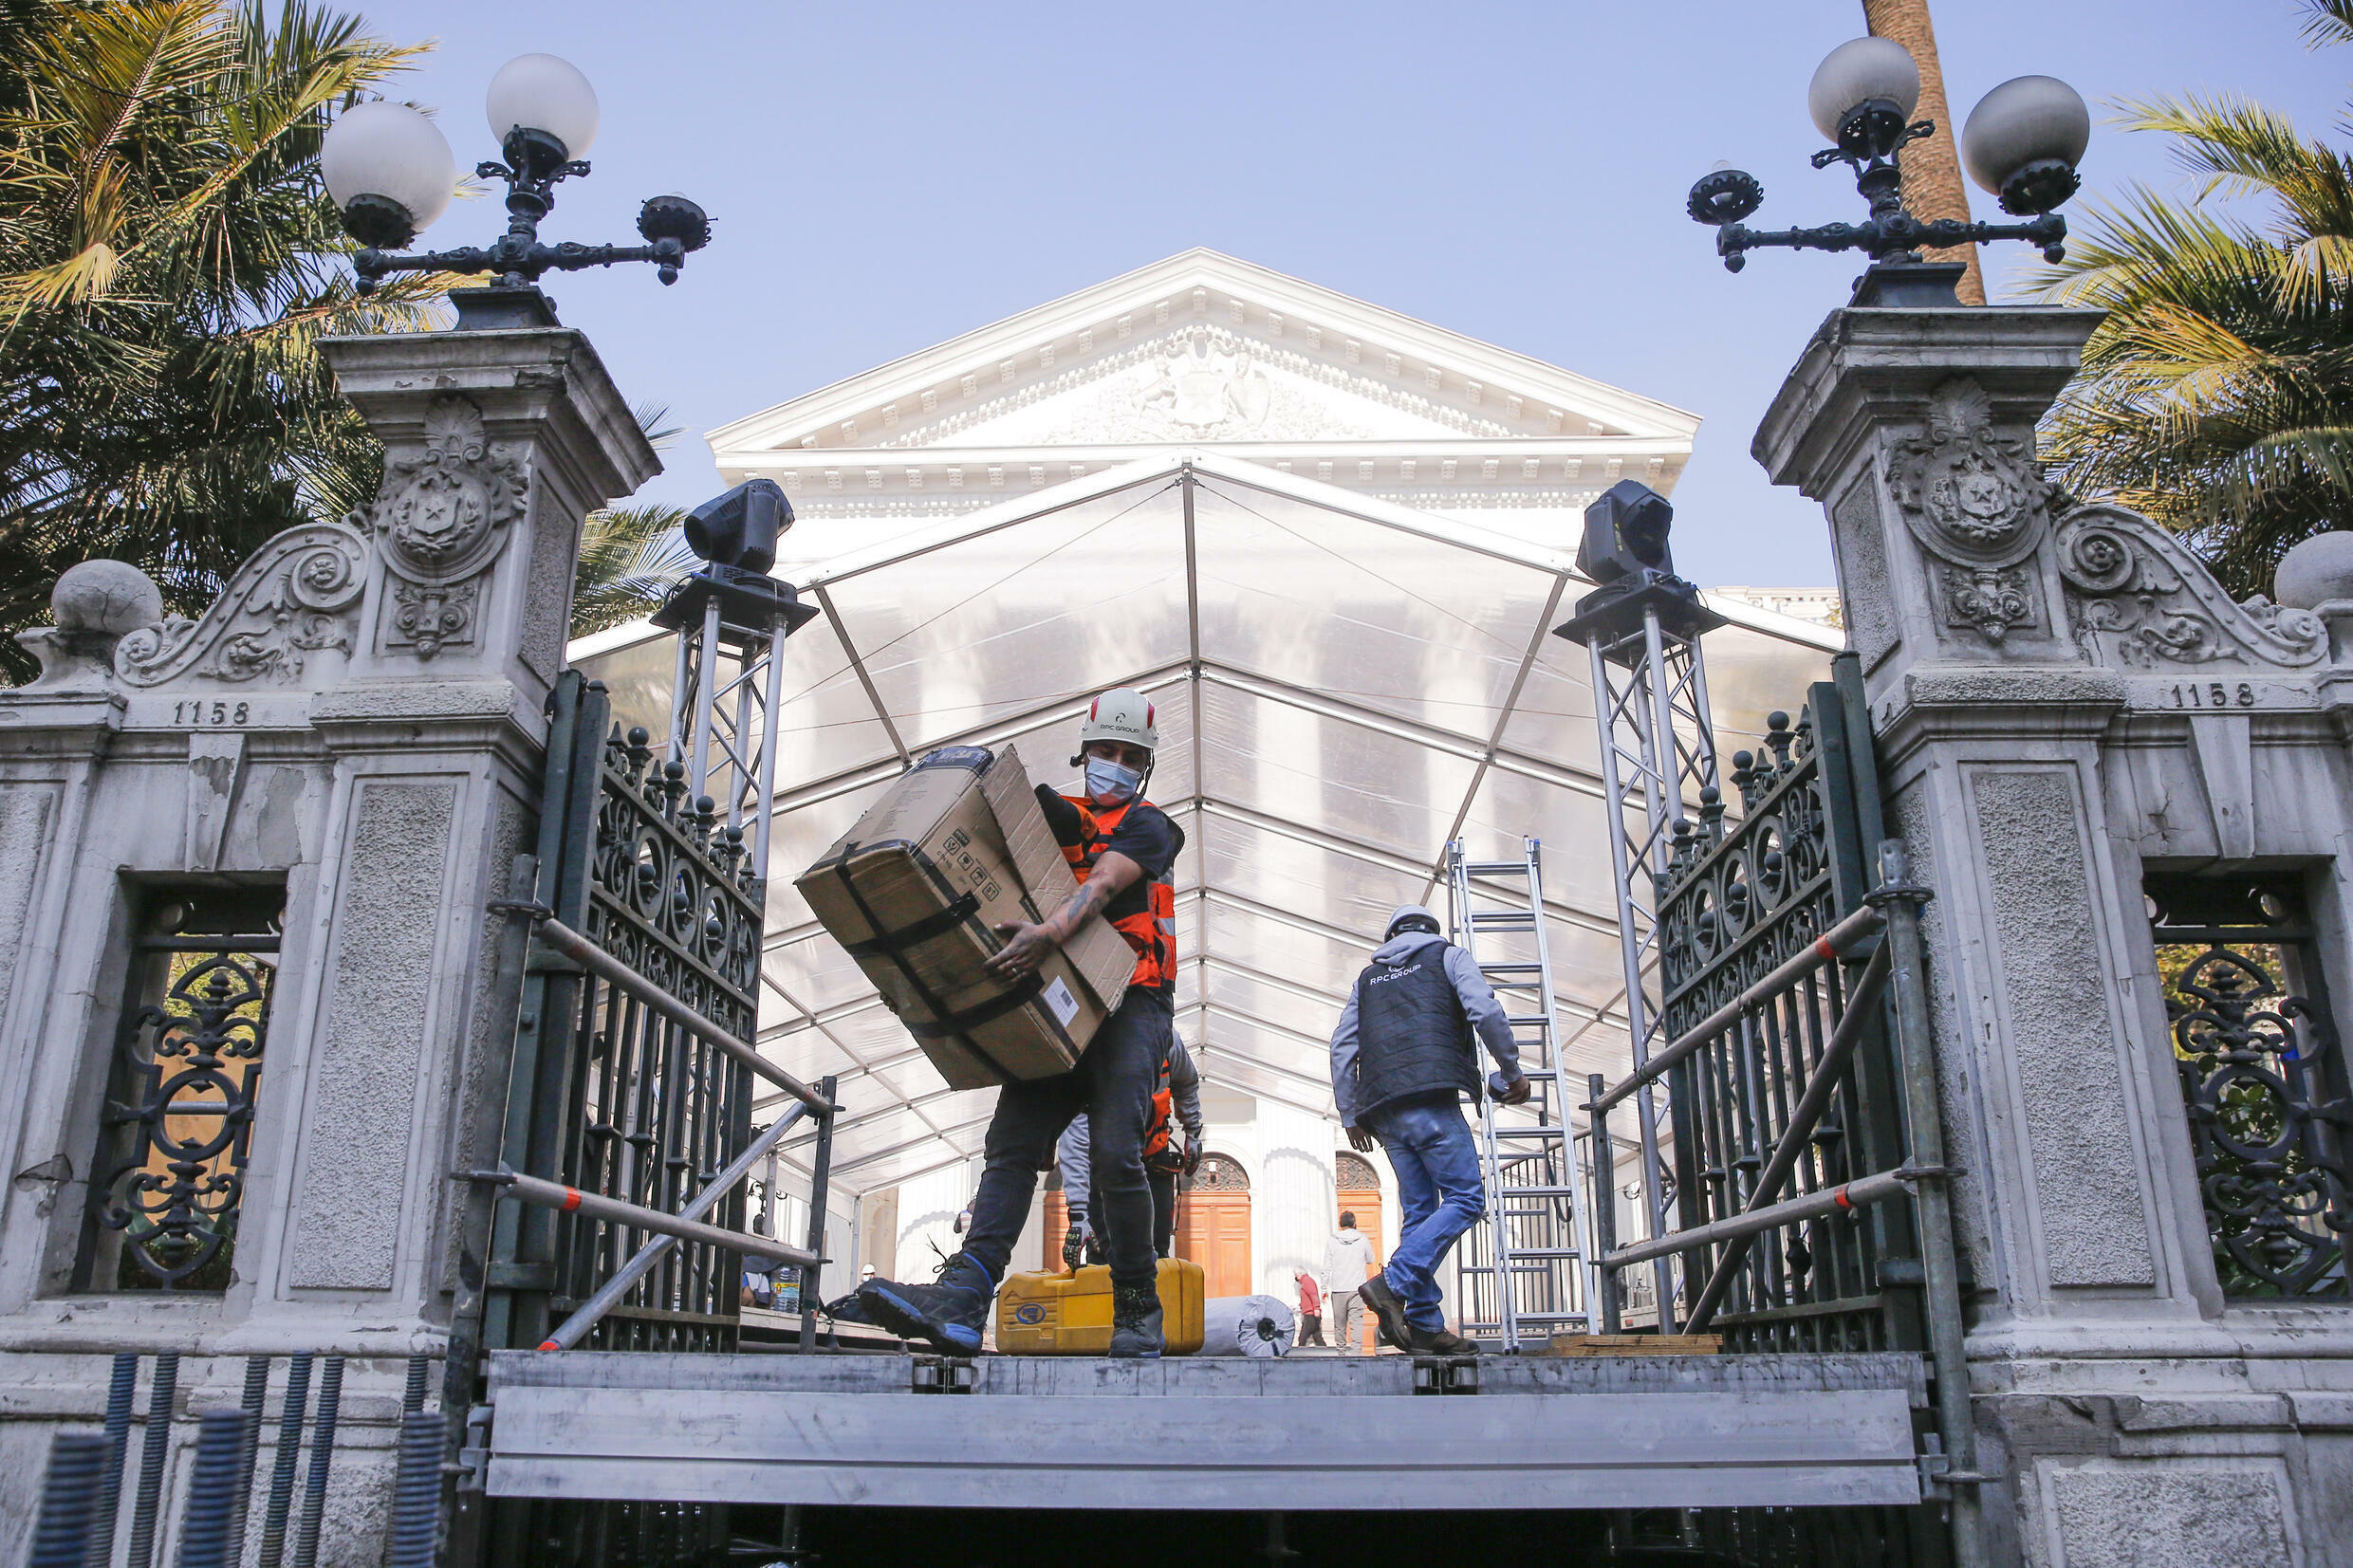 Workers in Chile prepare the National Congress headquarters before an elected assembly meets to draft the country's new Constitution